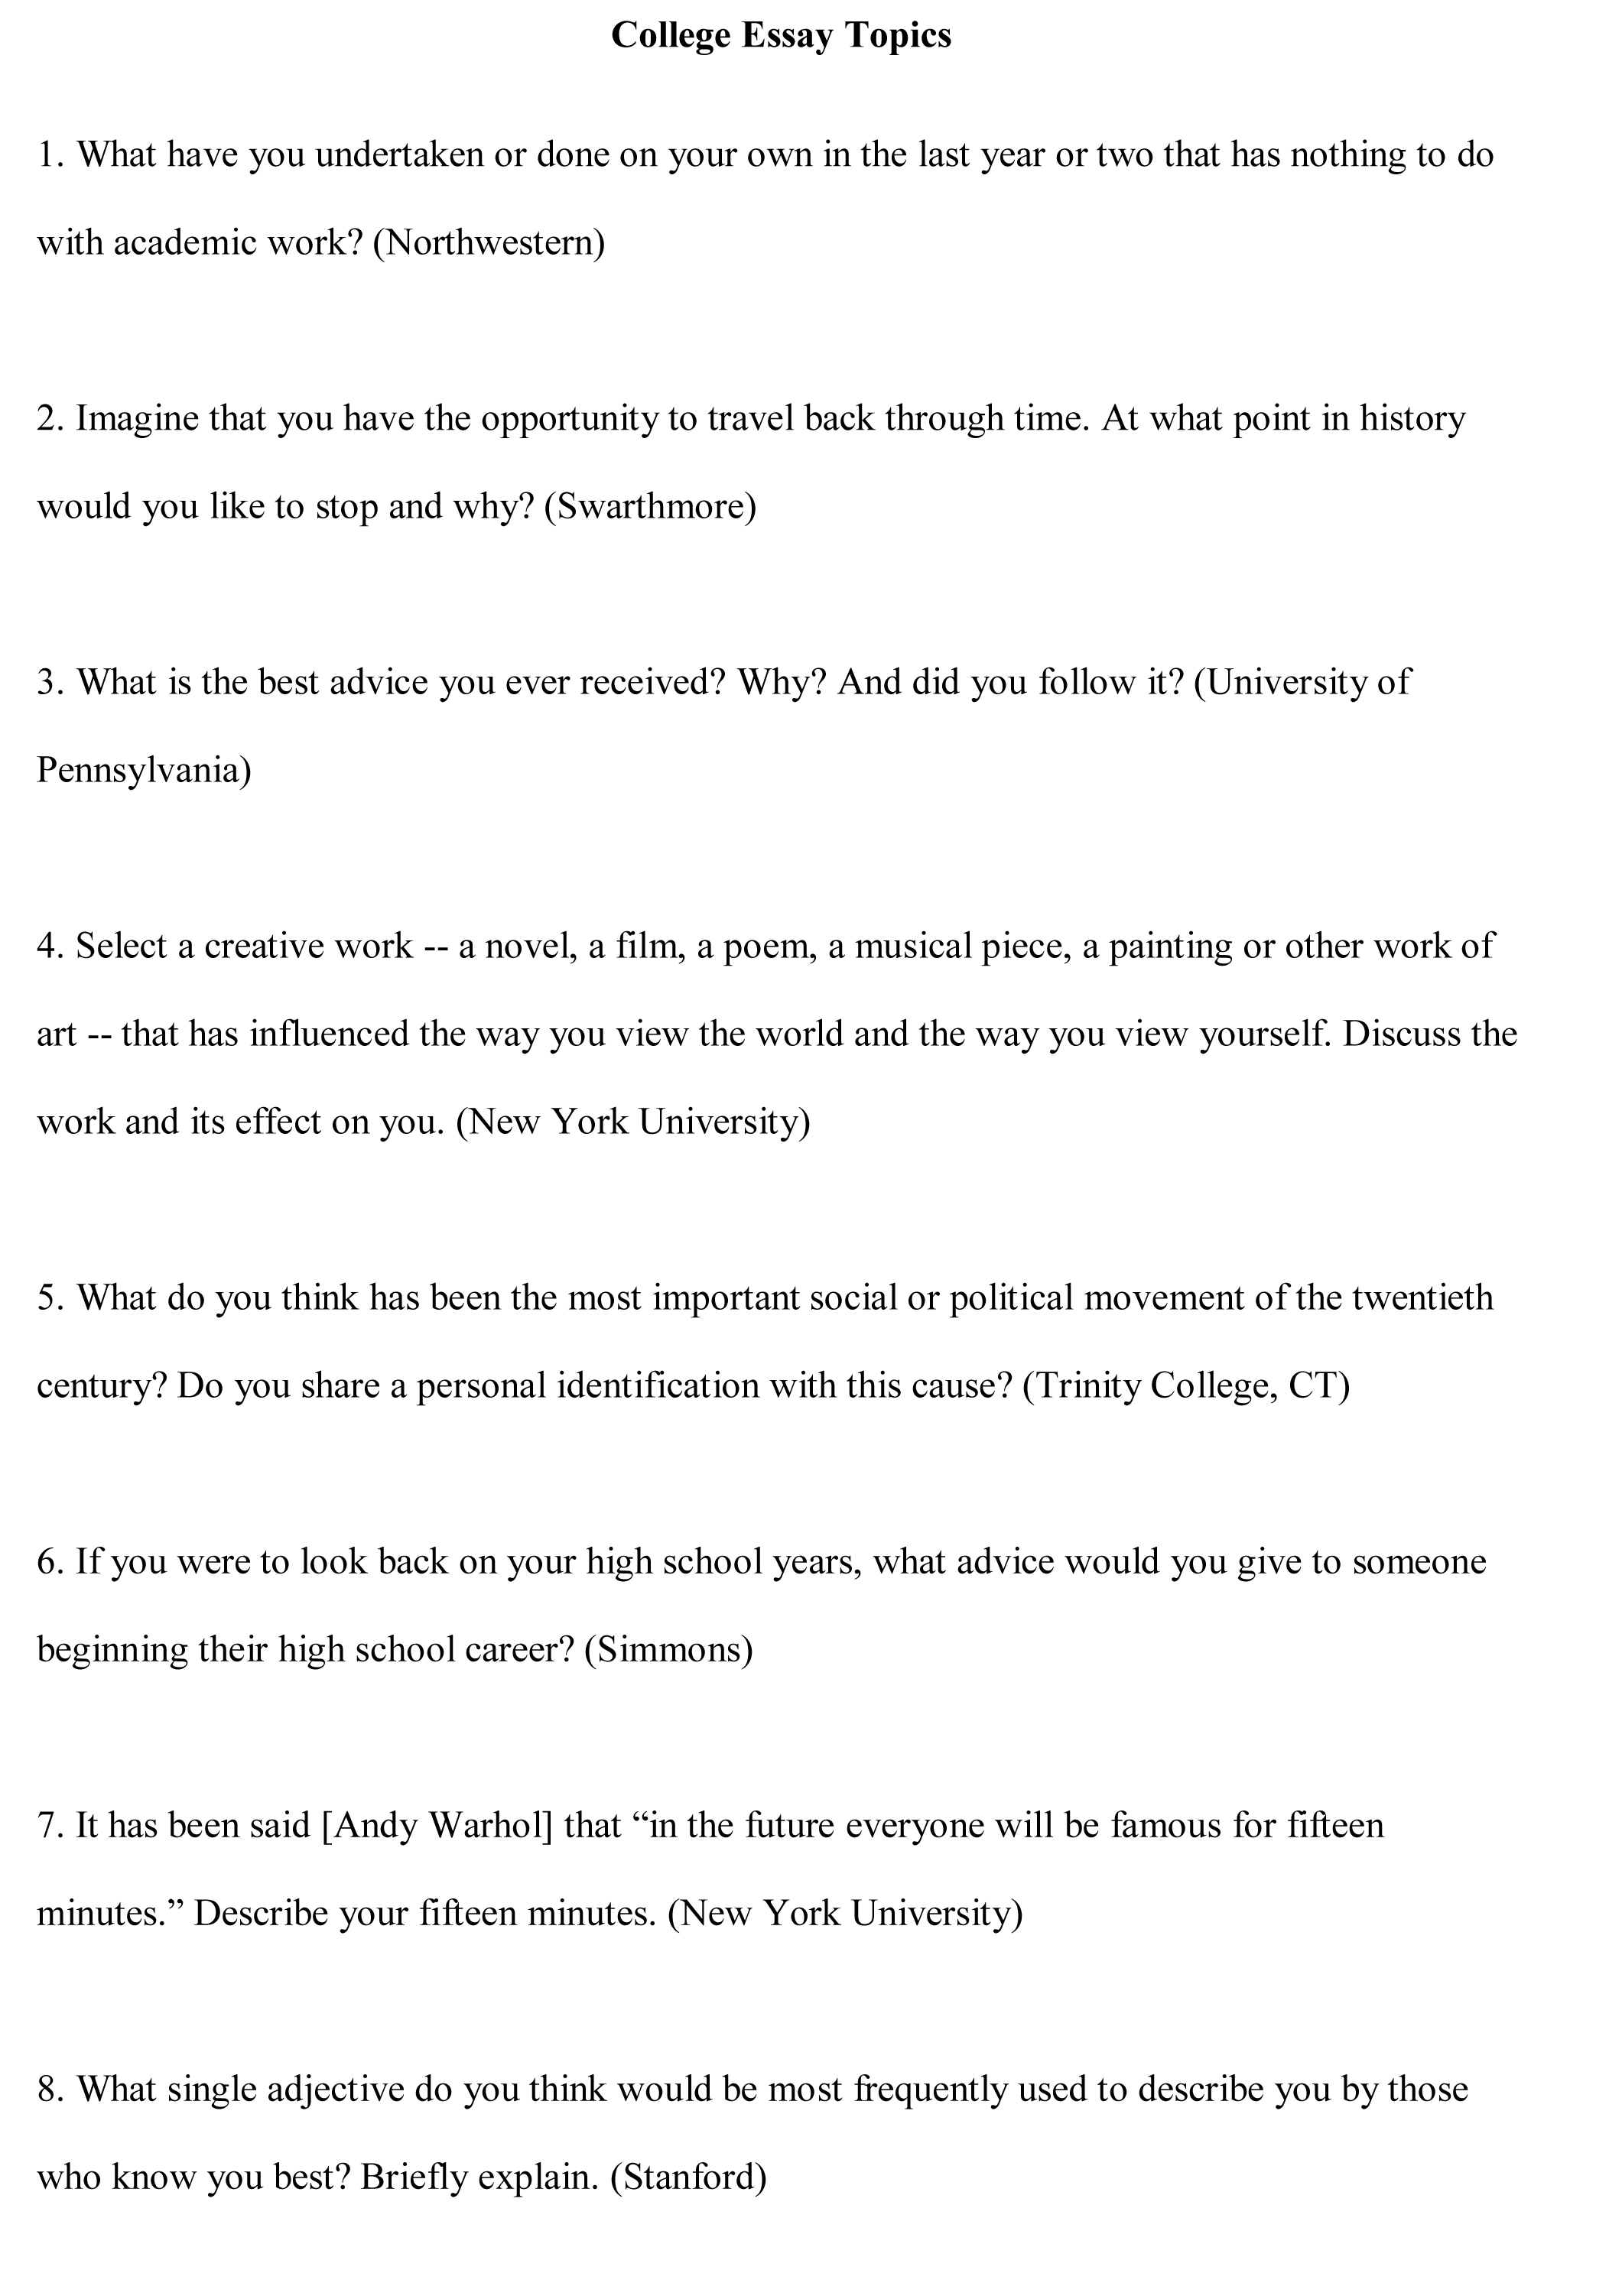 009 Research Paper Psychology Topics List College Essay Free Awesome Topic Ideas Full